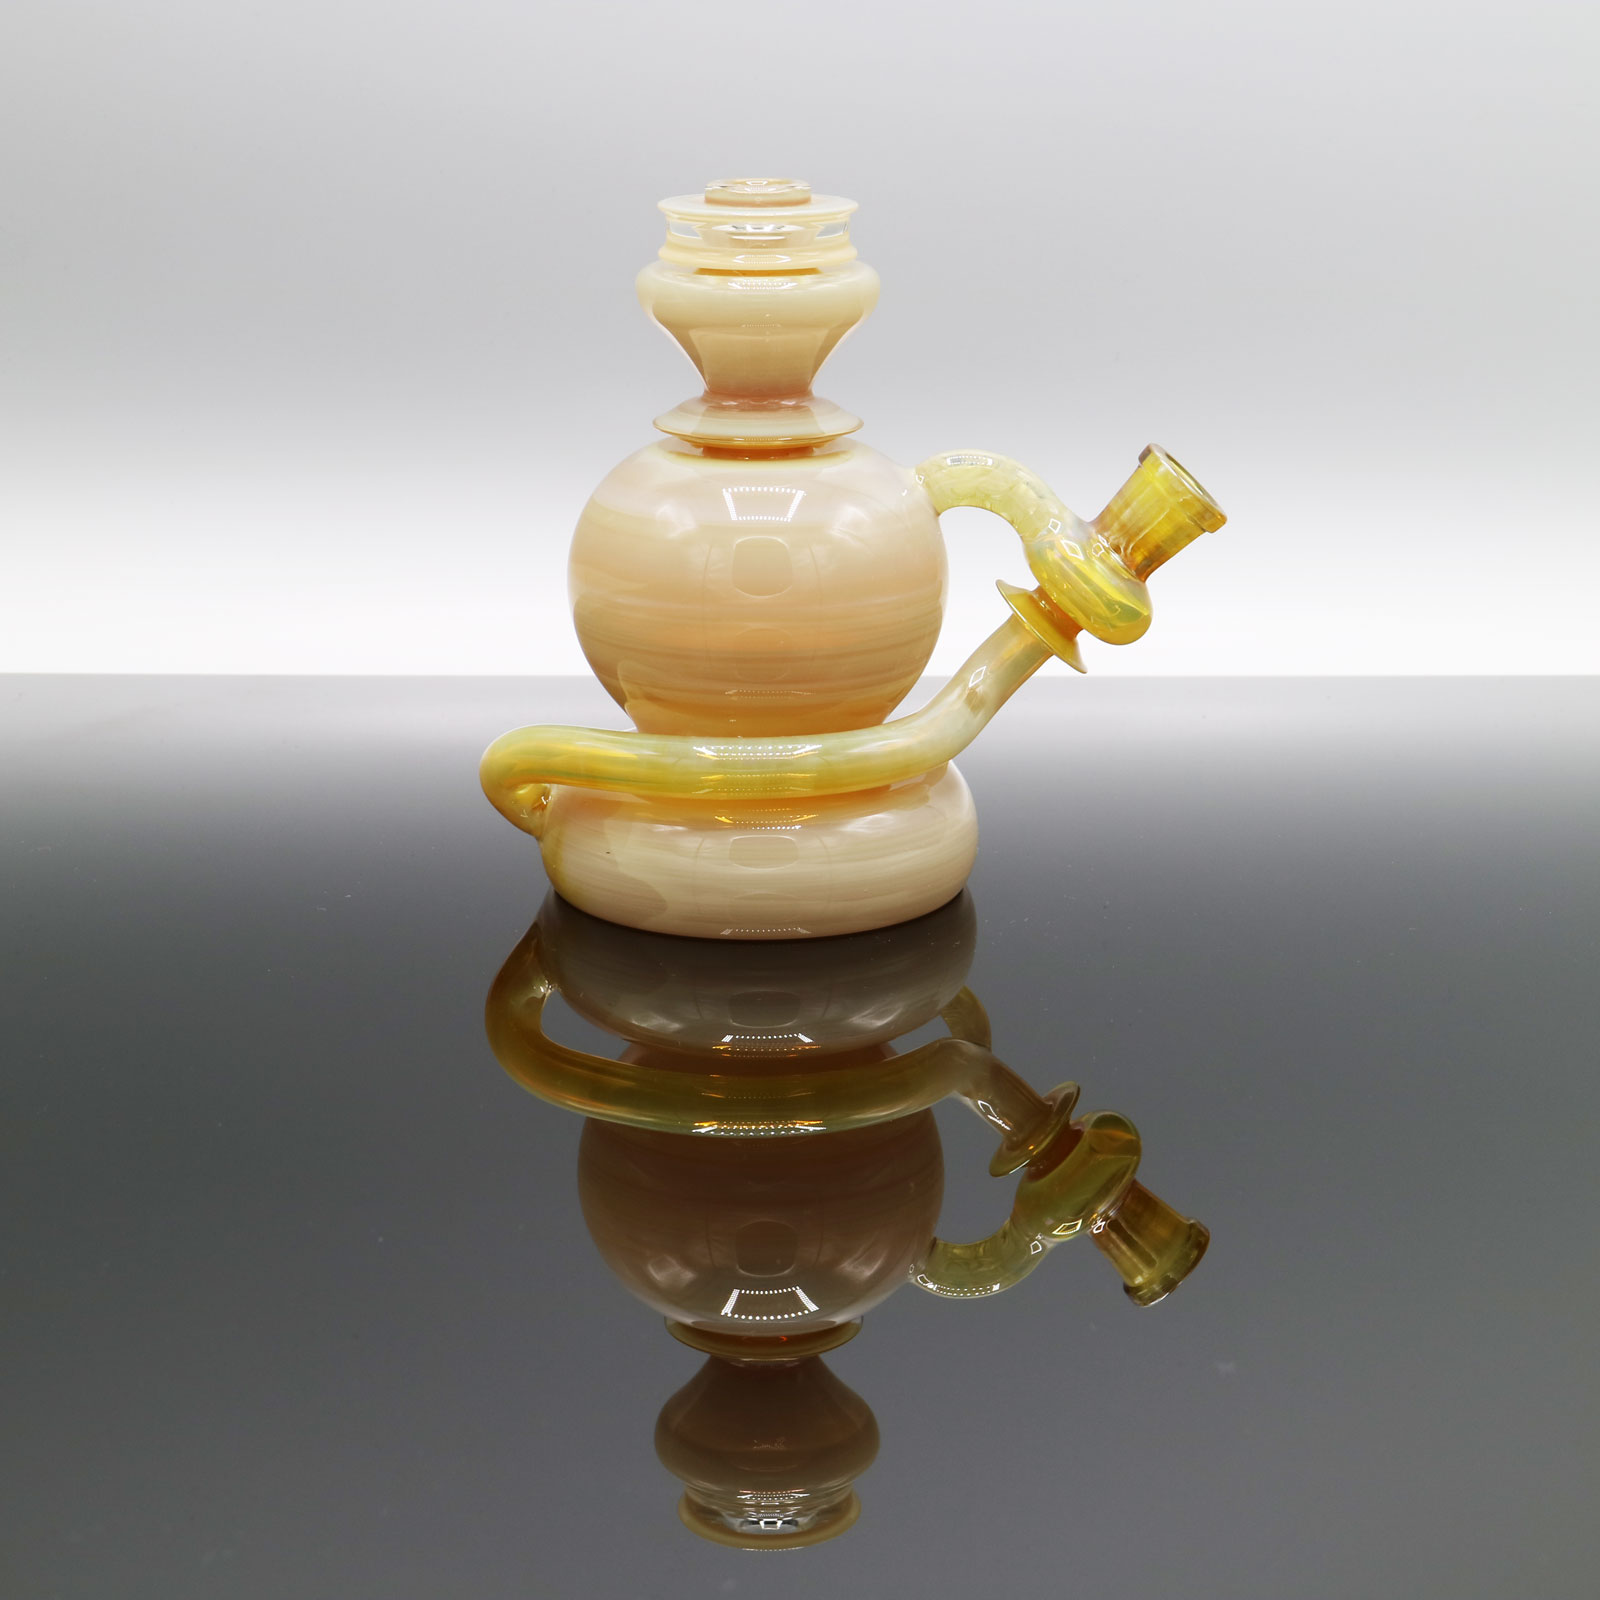 Philpot – 2018 Fumed 10mm Spinnerjet